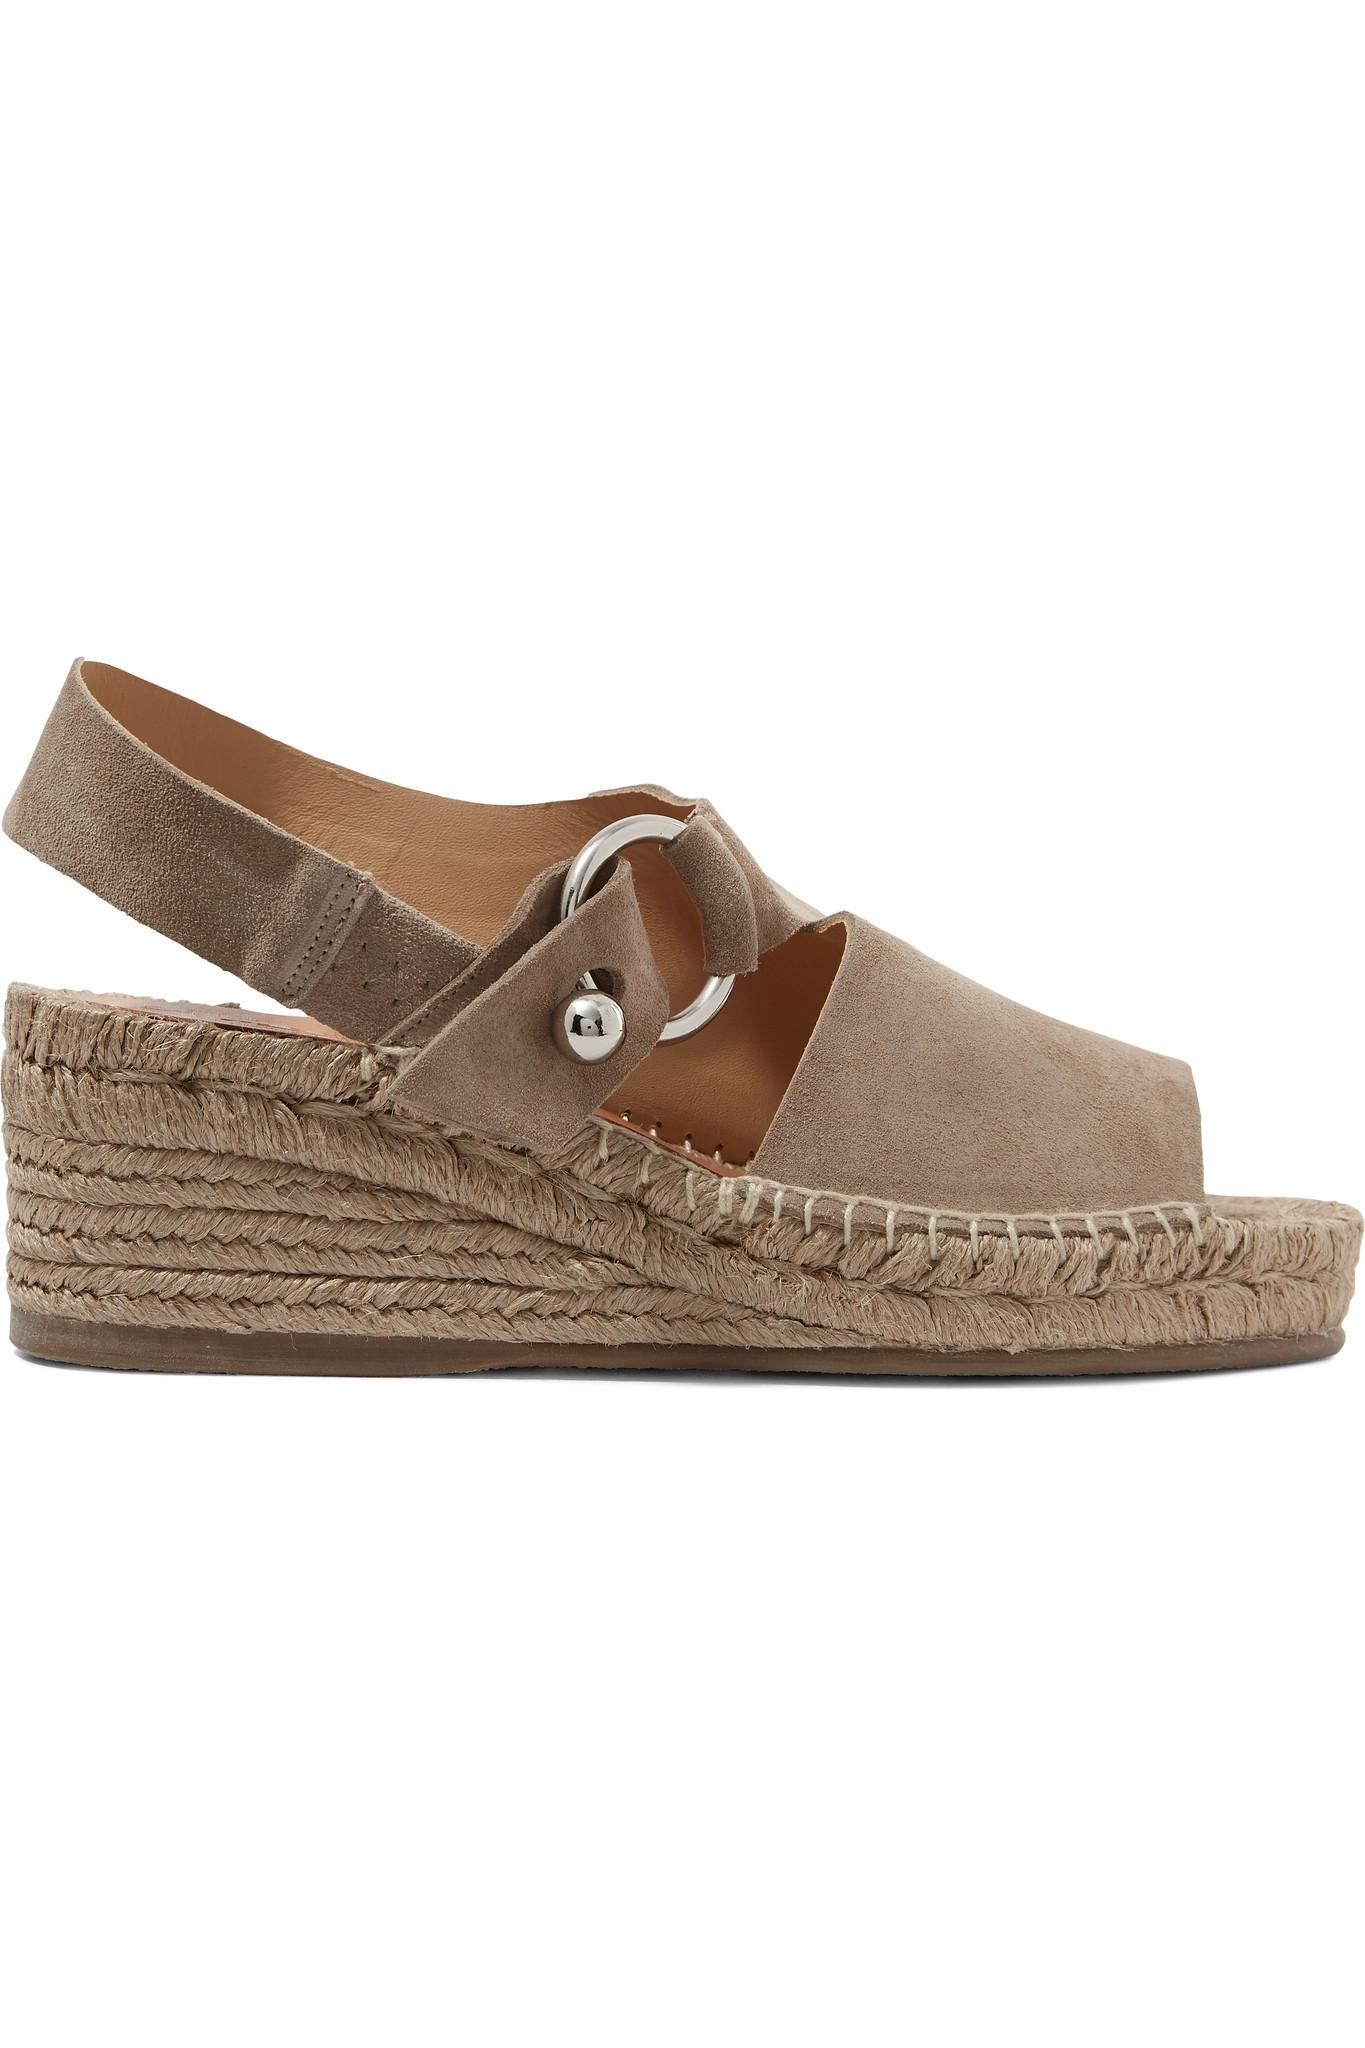 af00a14eb53 Lyst - Rag   Bone Arc Suede Espadrille Wedge Sandals in Natural